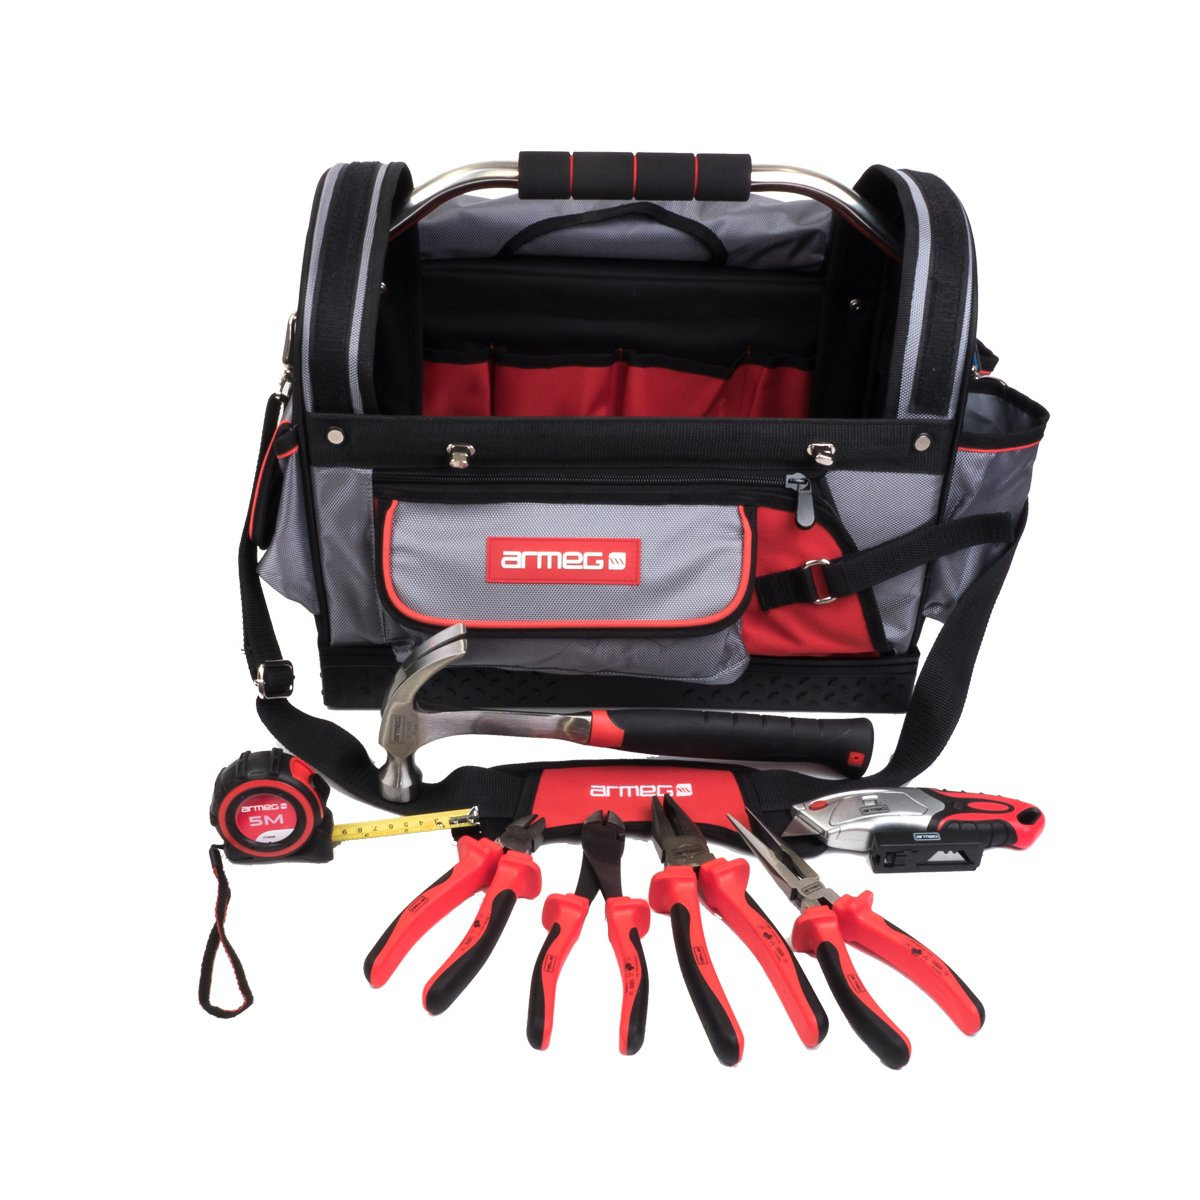 It's #FreebieFriday! RT & Follow by 24th April for a chance to win an 8 Piece Hand Tool Kit! https://t.co/cjNmT4n05S